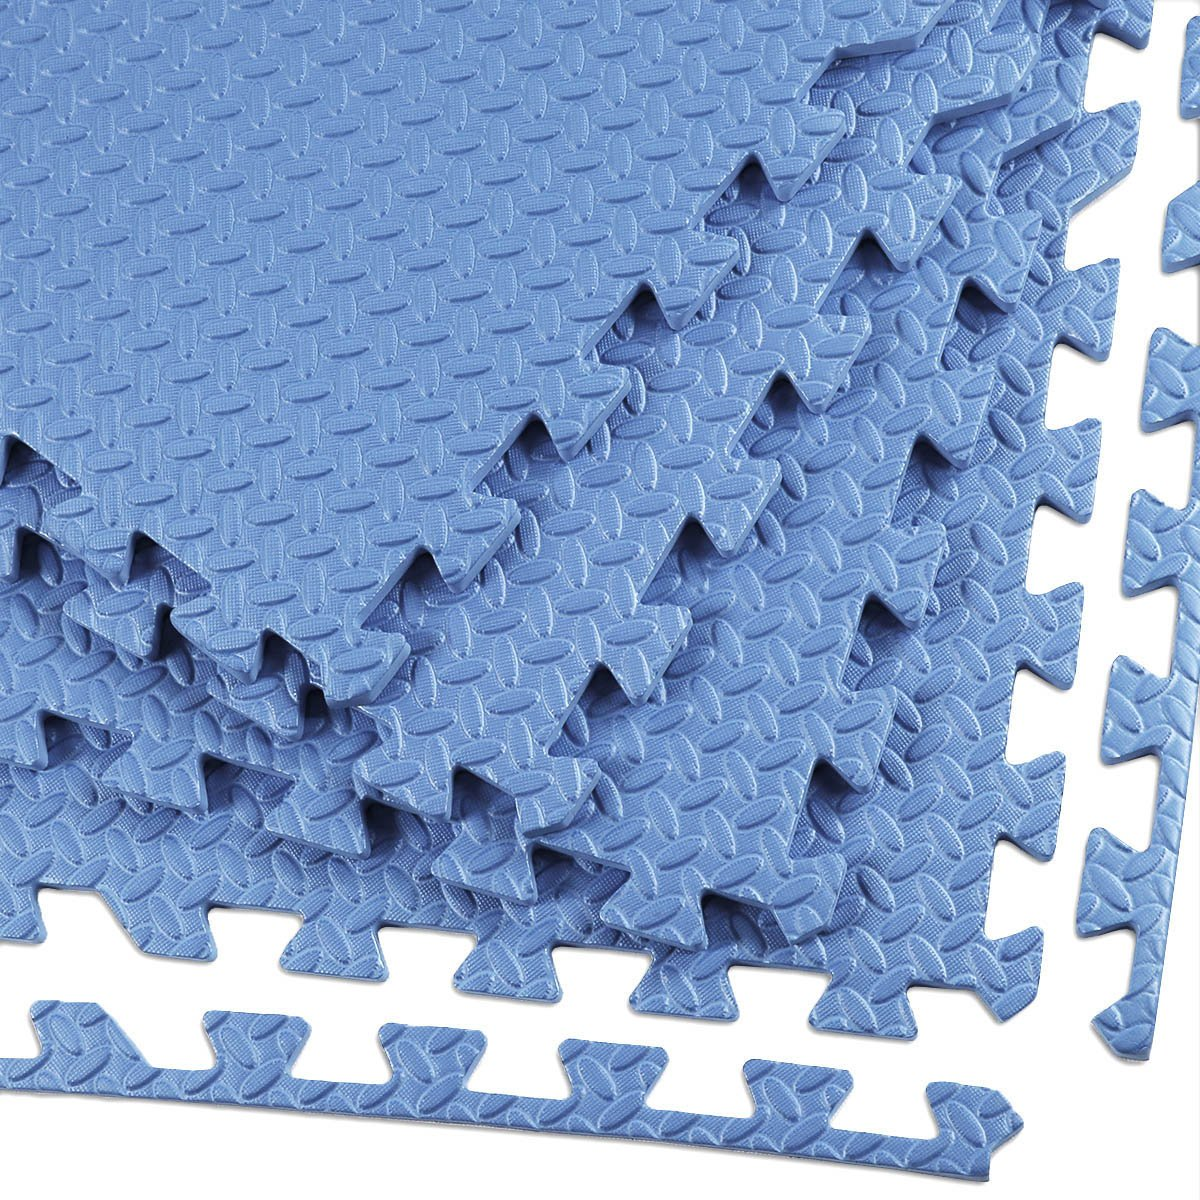 Clevr 96 sq. ft (24 Pieces) Interlocking Gym EVA Foam Floor Mat Tiles (24''x24''), Workout Exercise Mat - Blue Steel Pattern, Protective Flooring Puzzle Cushion with Borders, 1 Year Limited Warranty